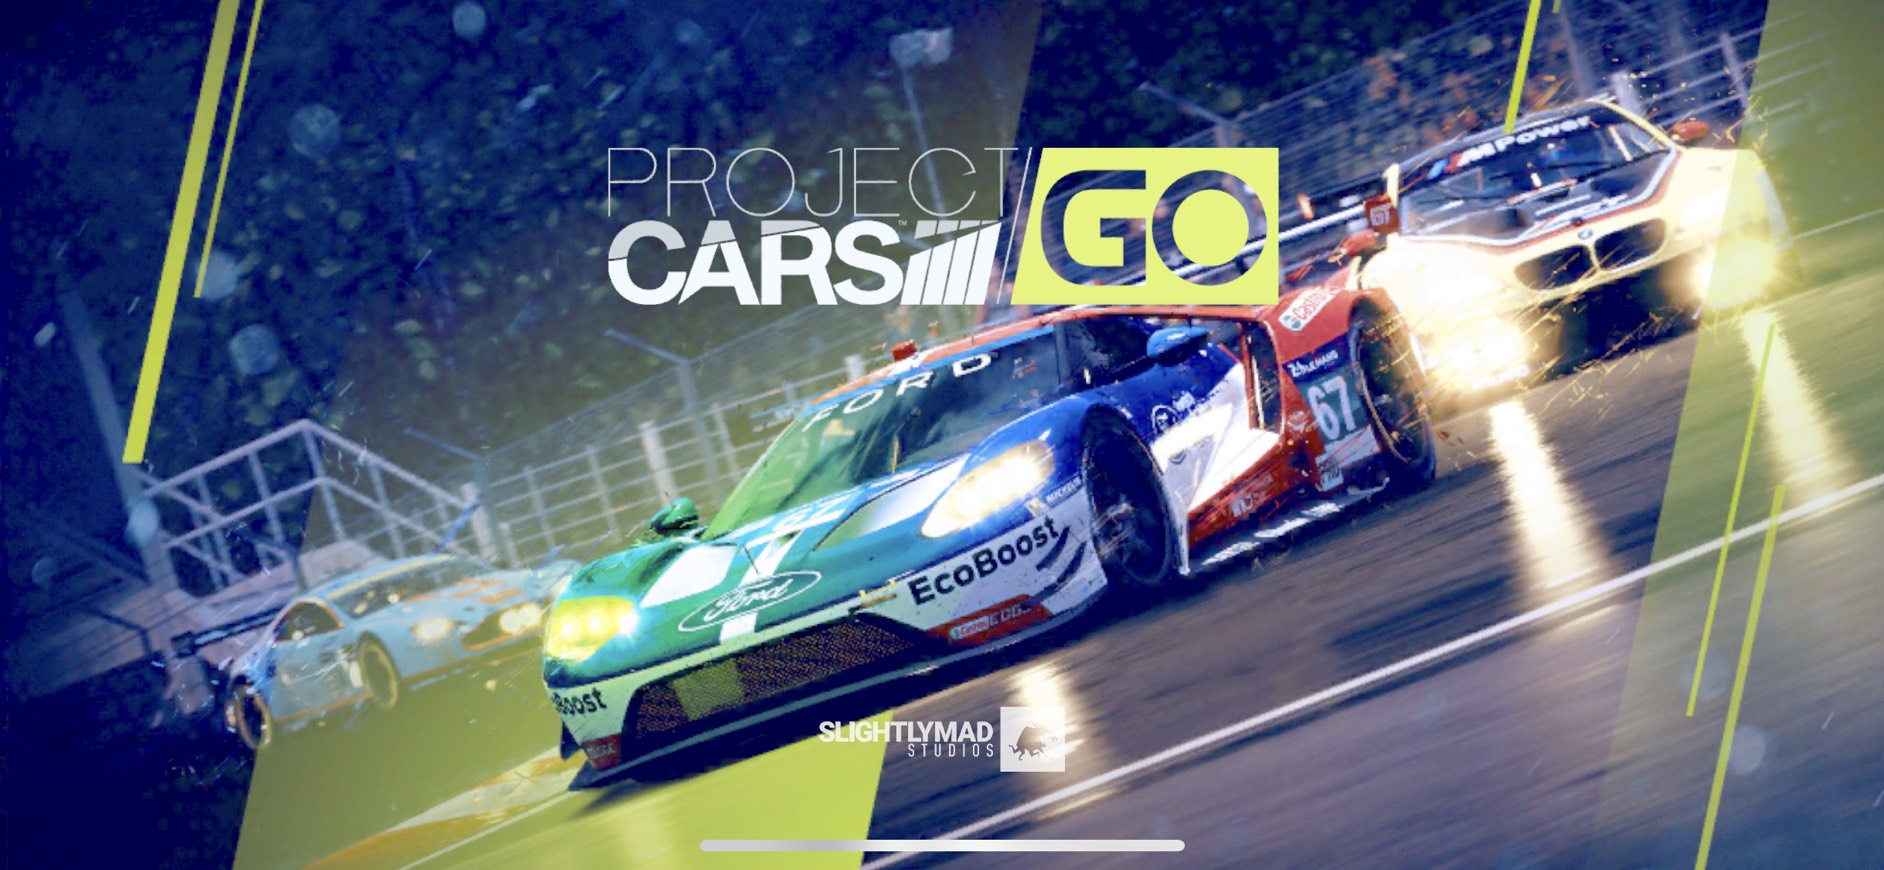 After three years, Project Cars Go is finally available for pre-registration